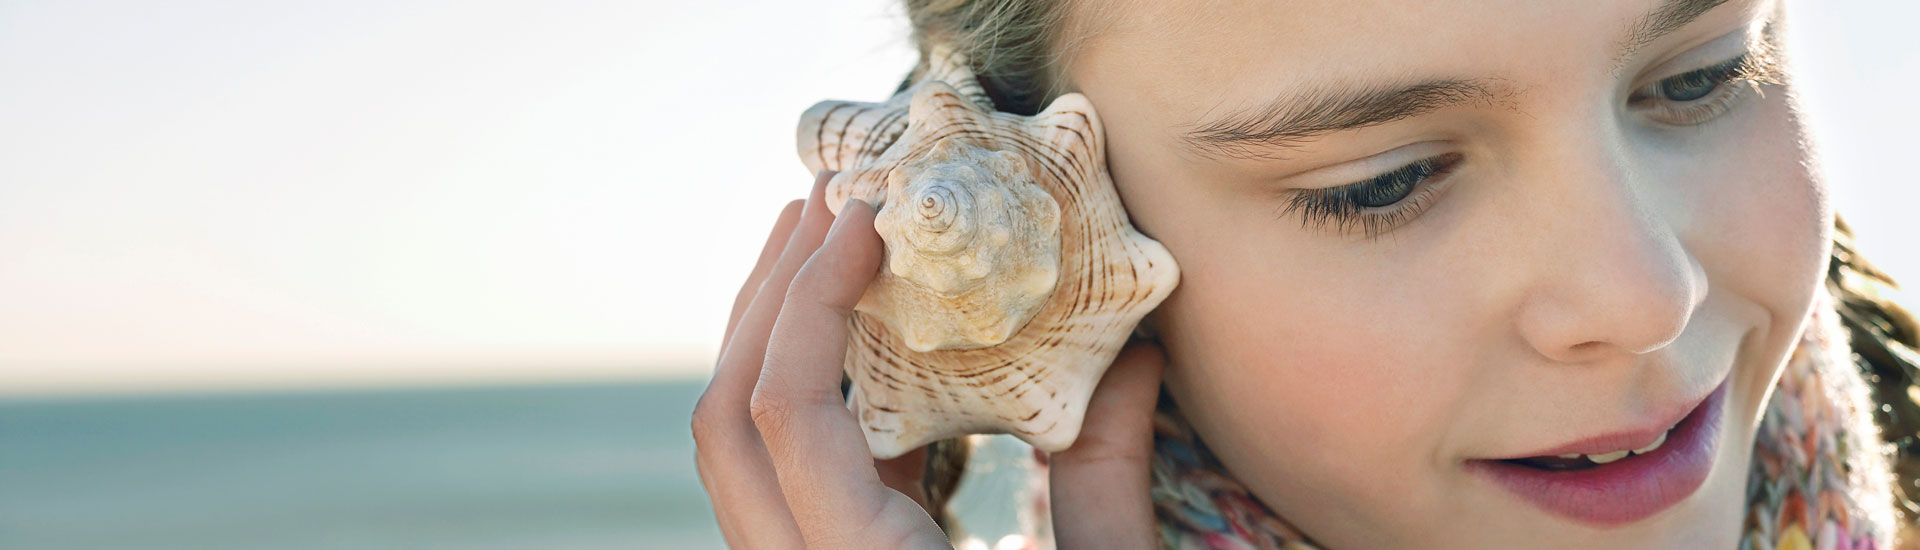 blonde girl listening to a seashell on a beach